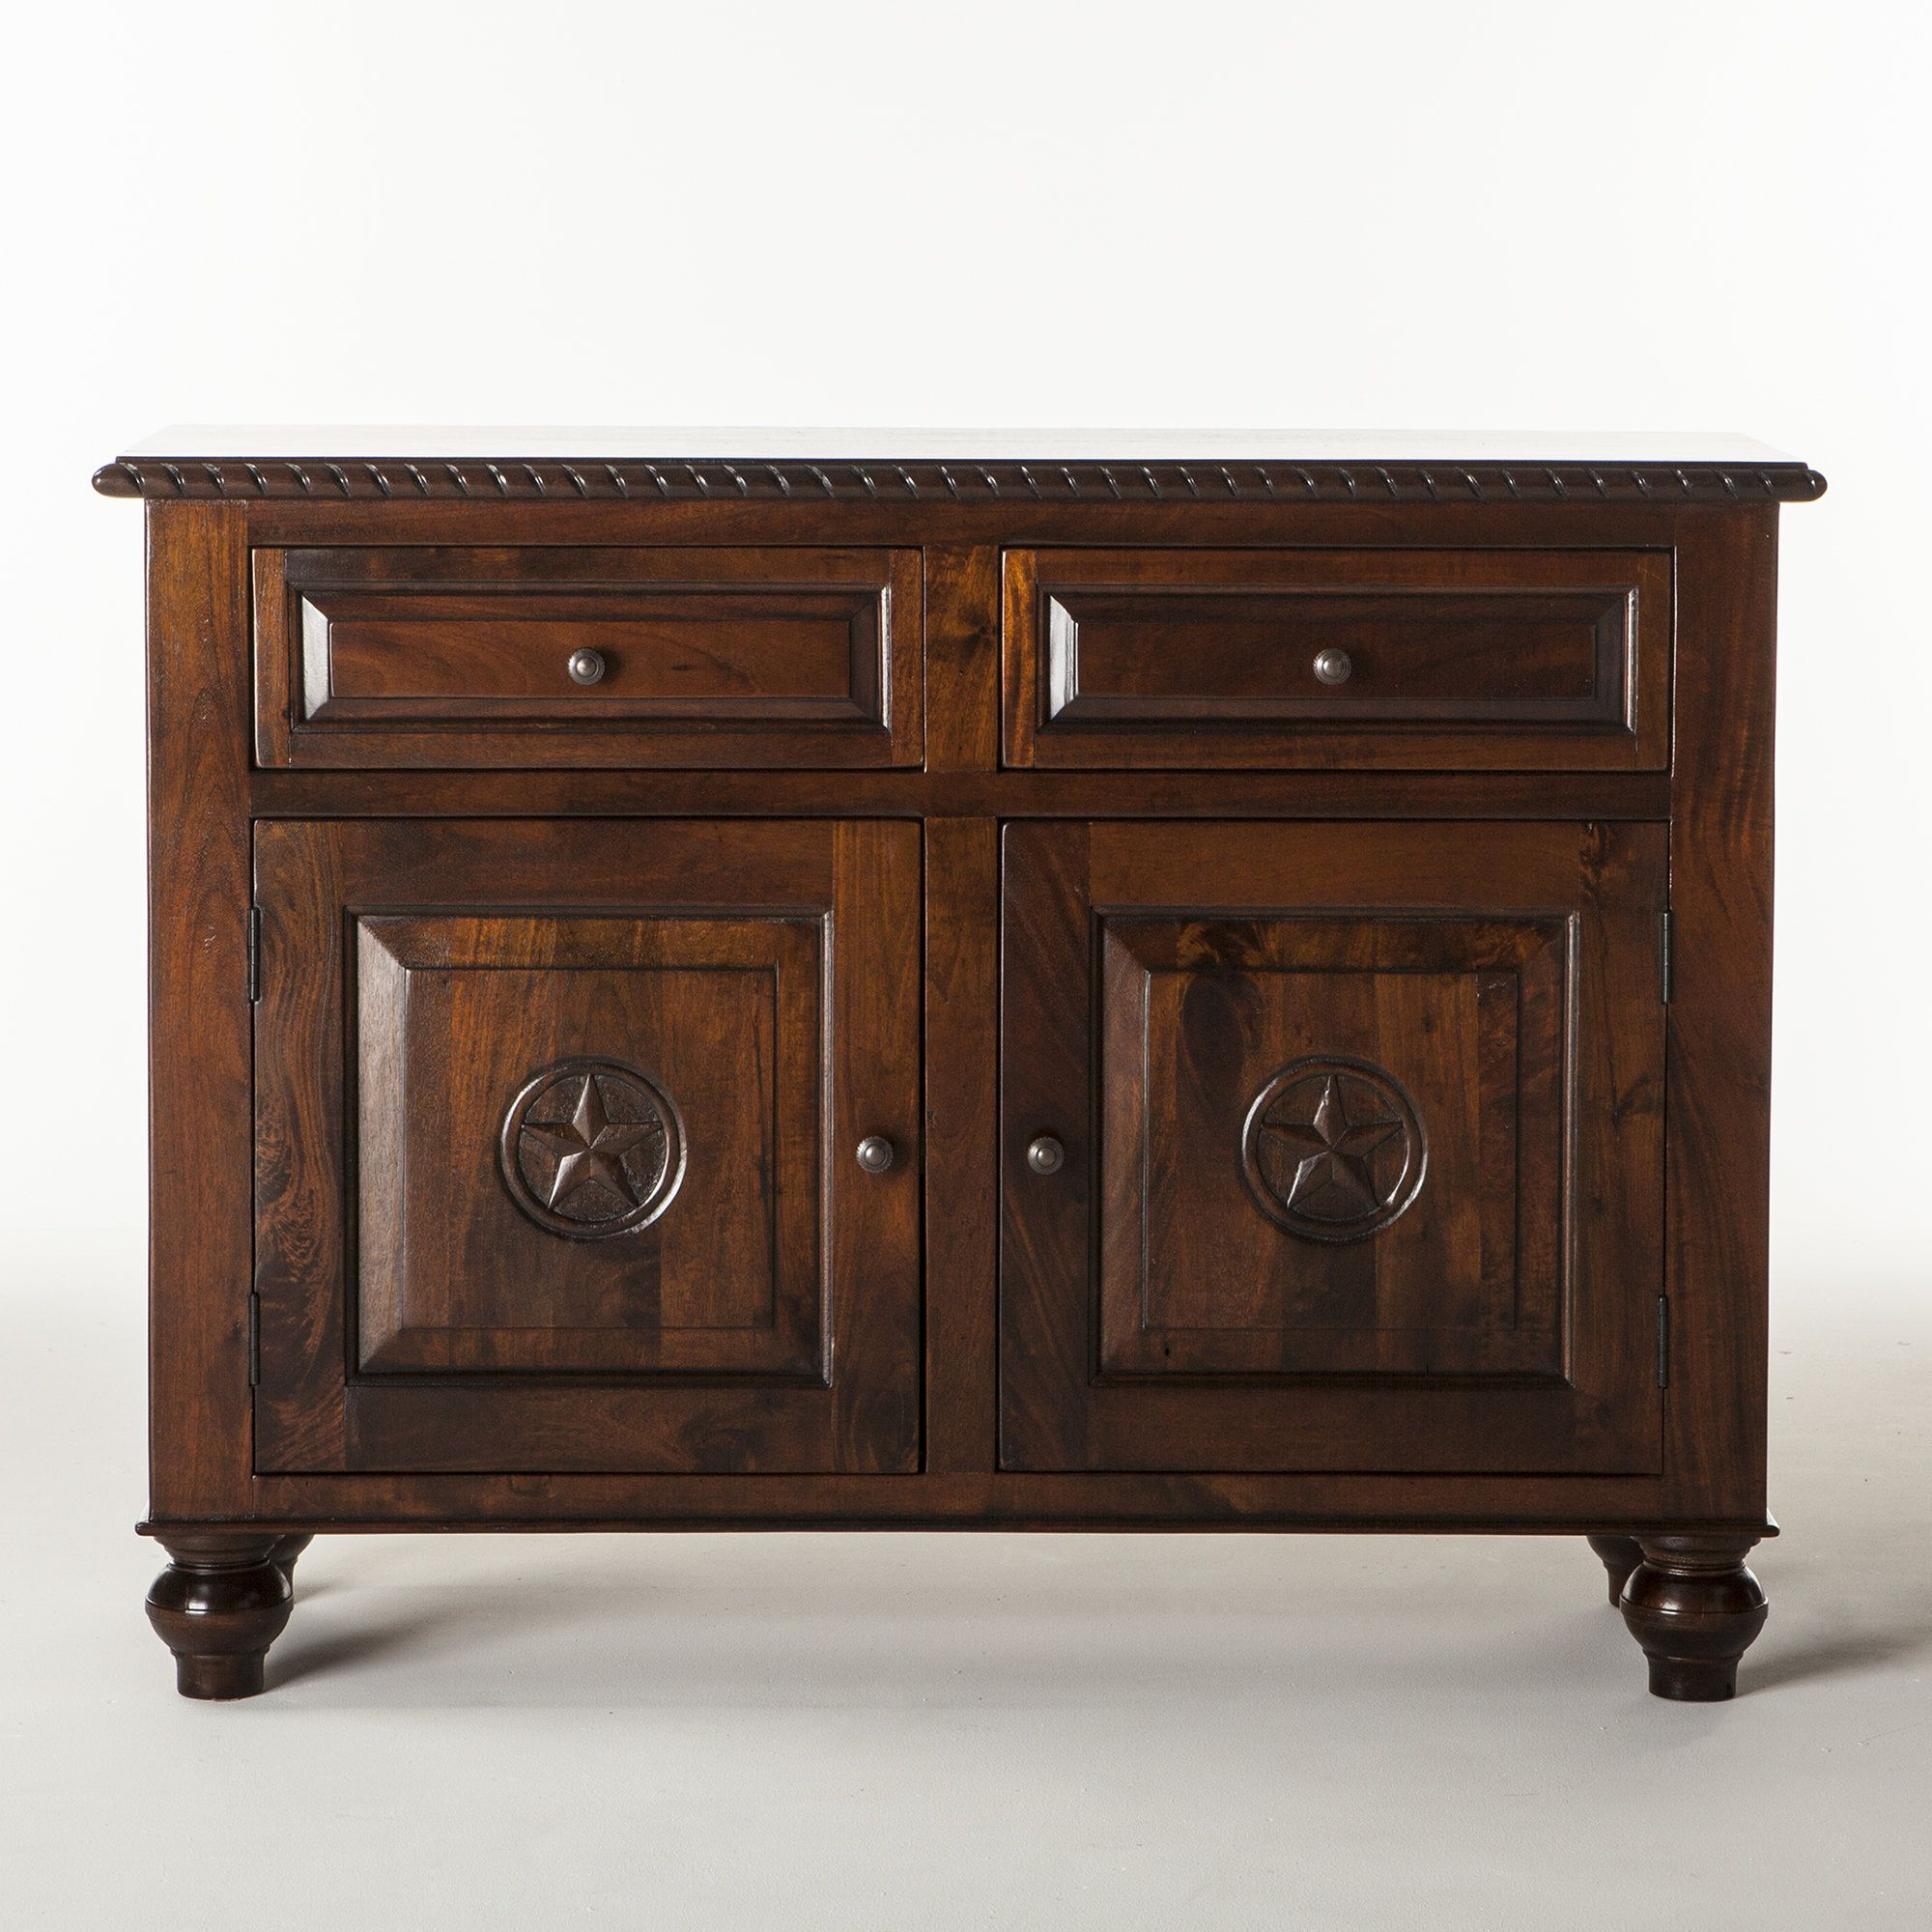 Valencia Buffet Sideboard Valencia Sideboard Products Sideboard Solid Wood Sideboard